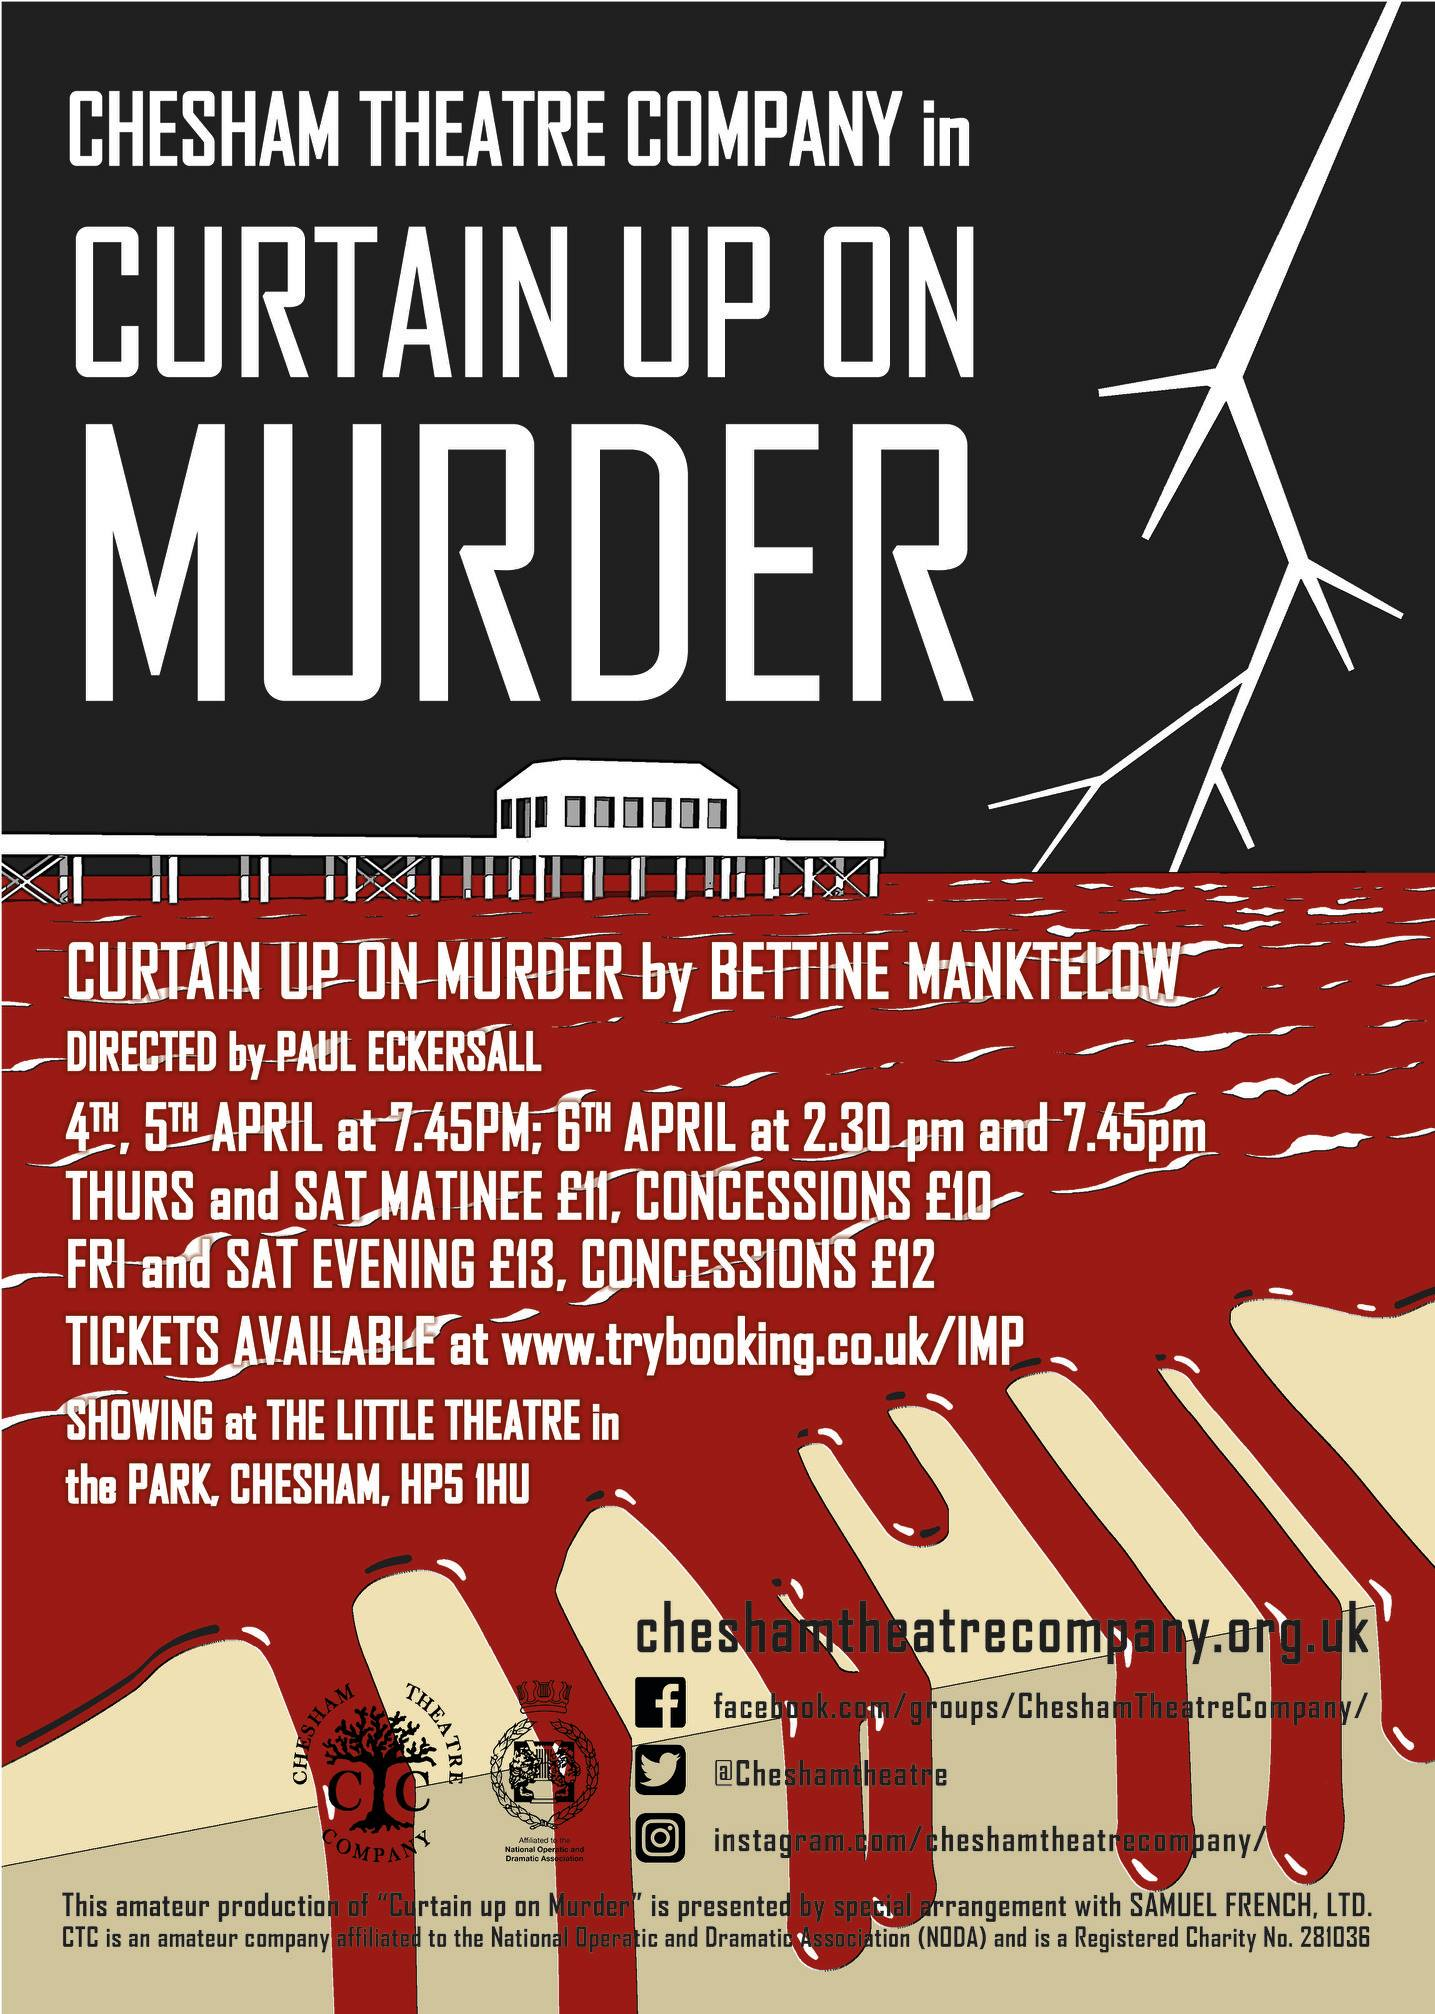 Curtain up on Murder